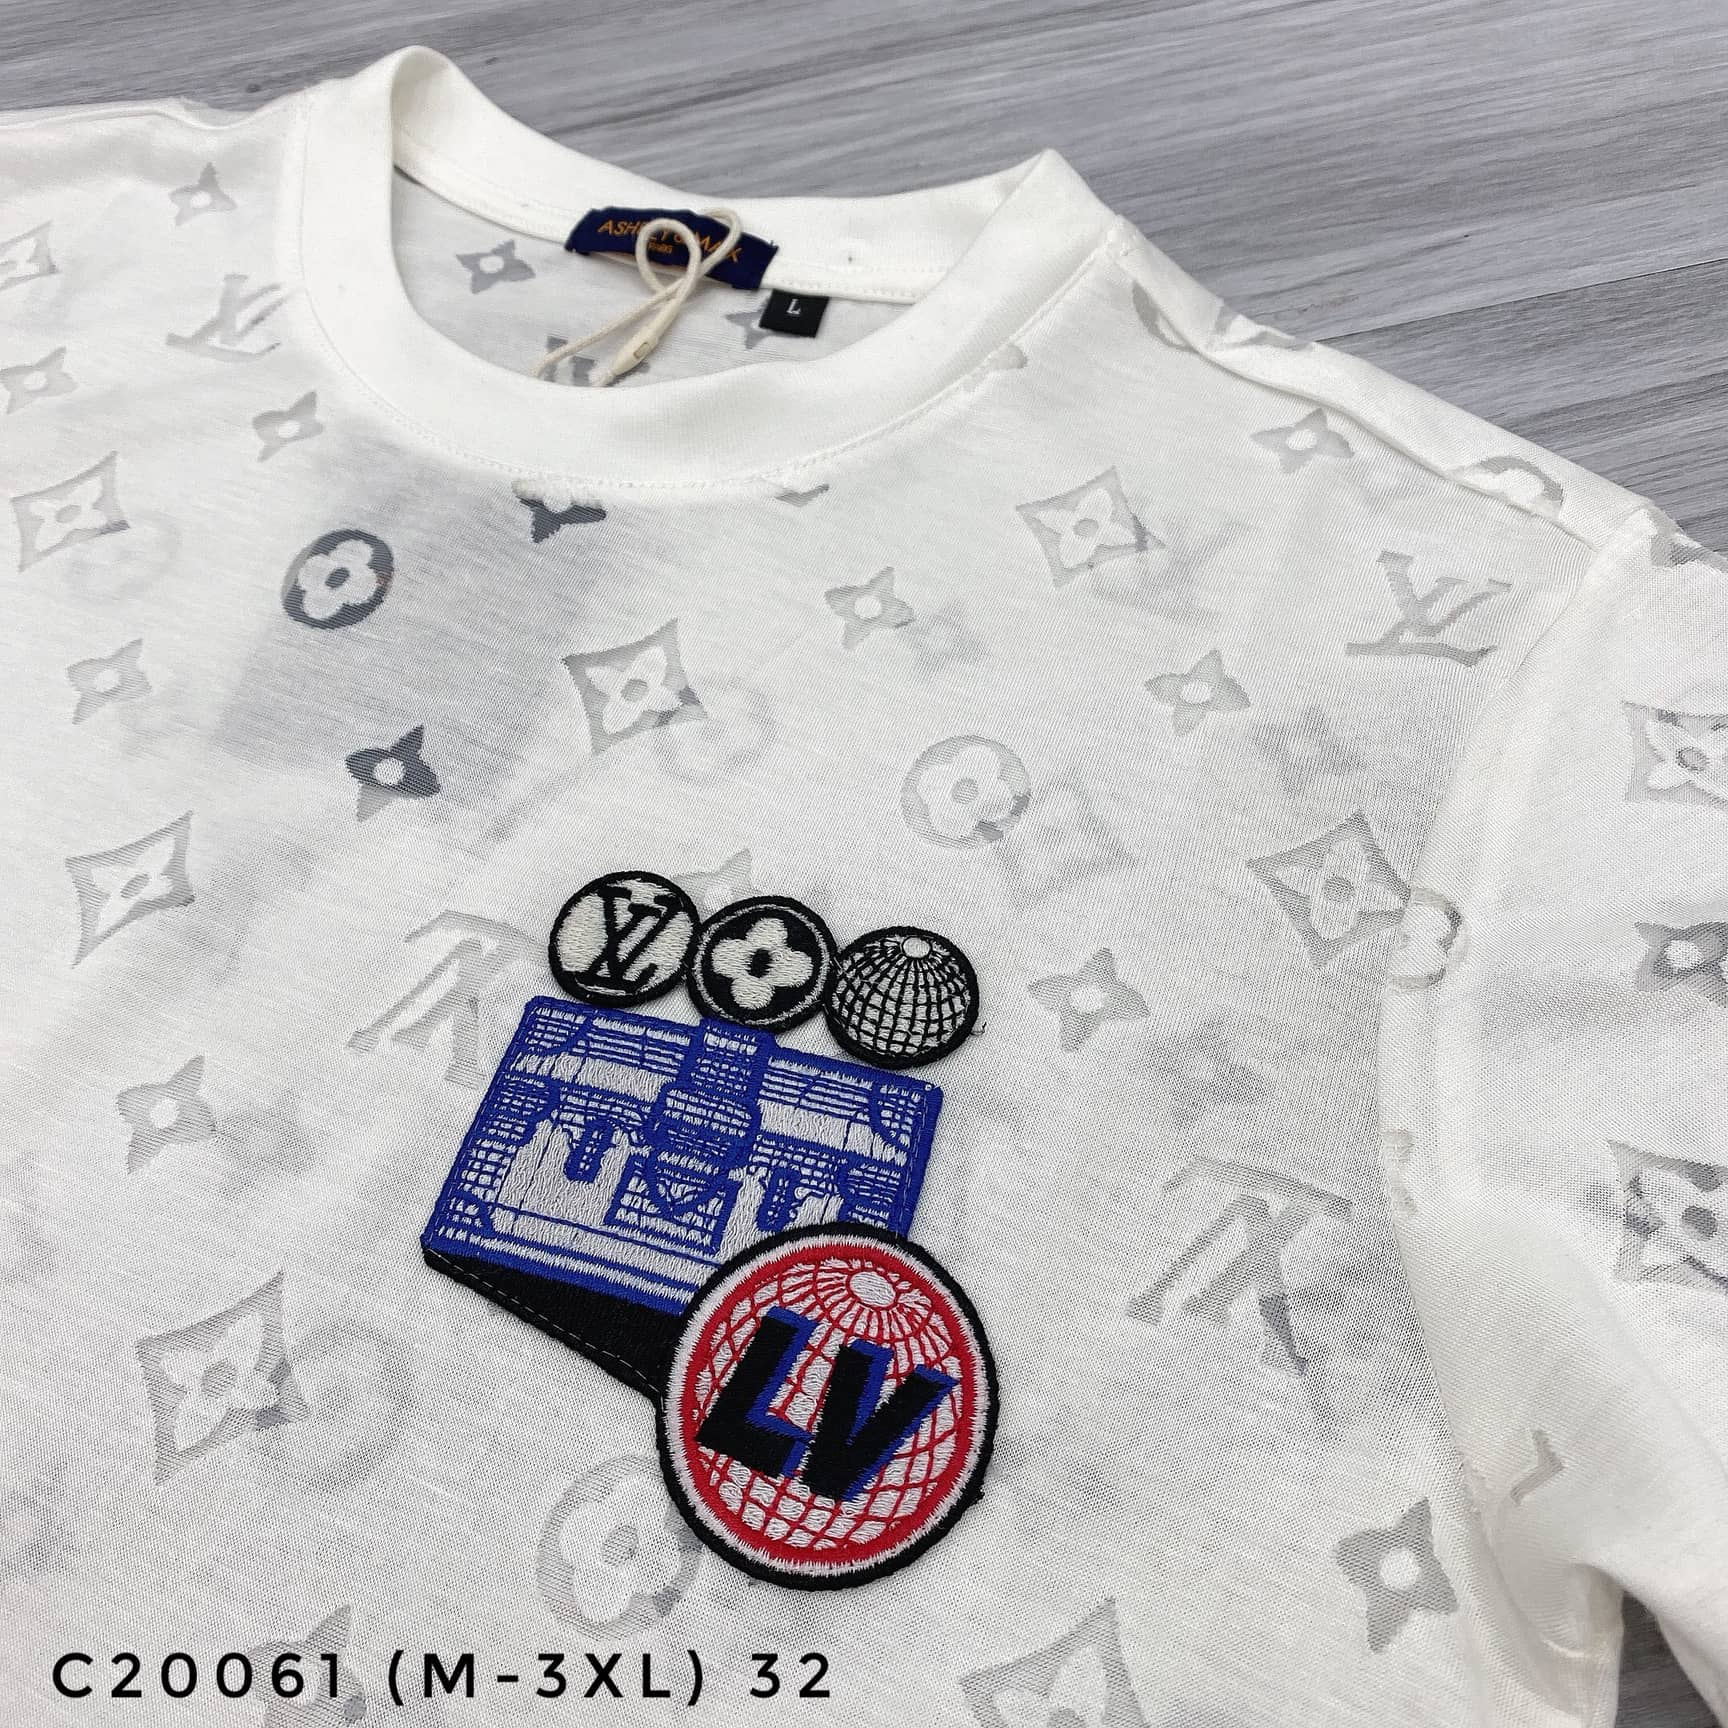 at-co-tron-c20061-m-3xl